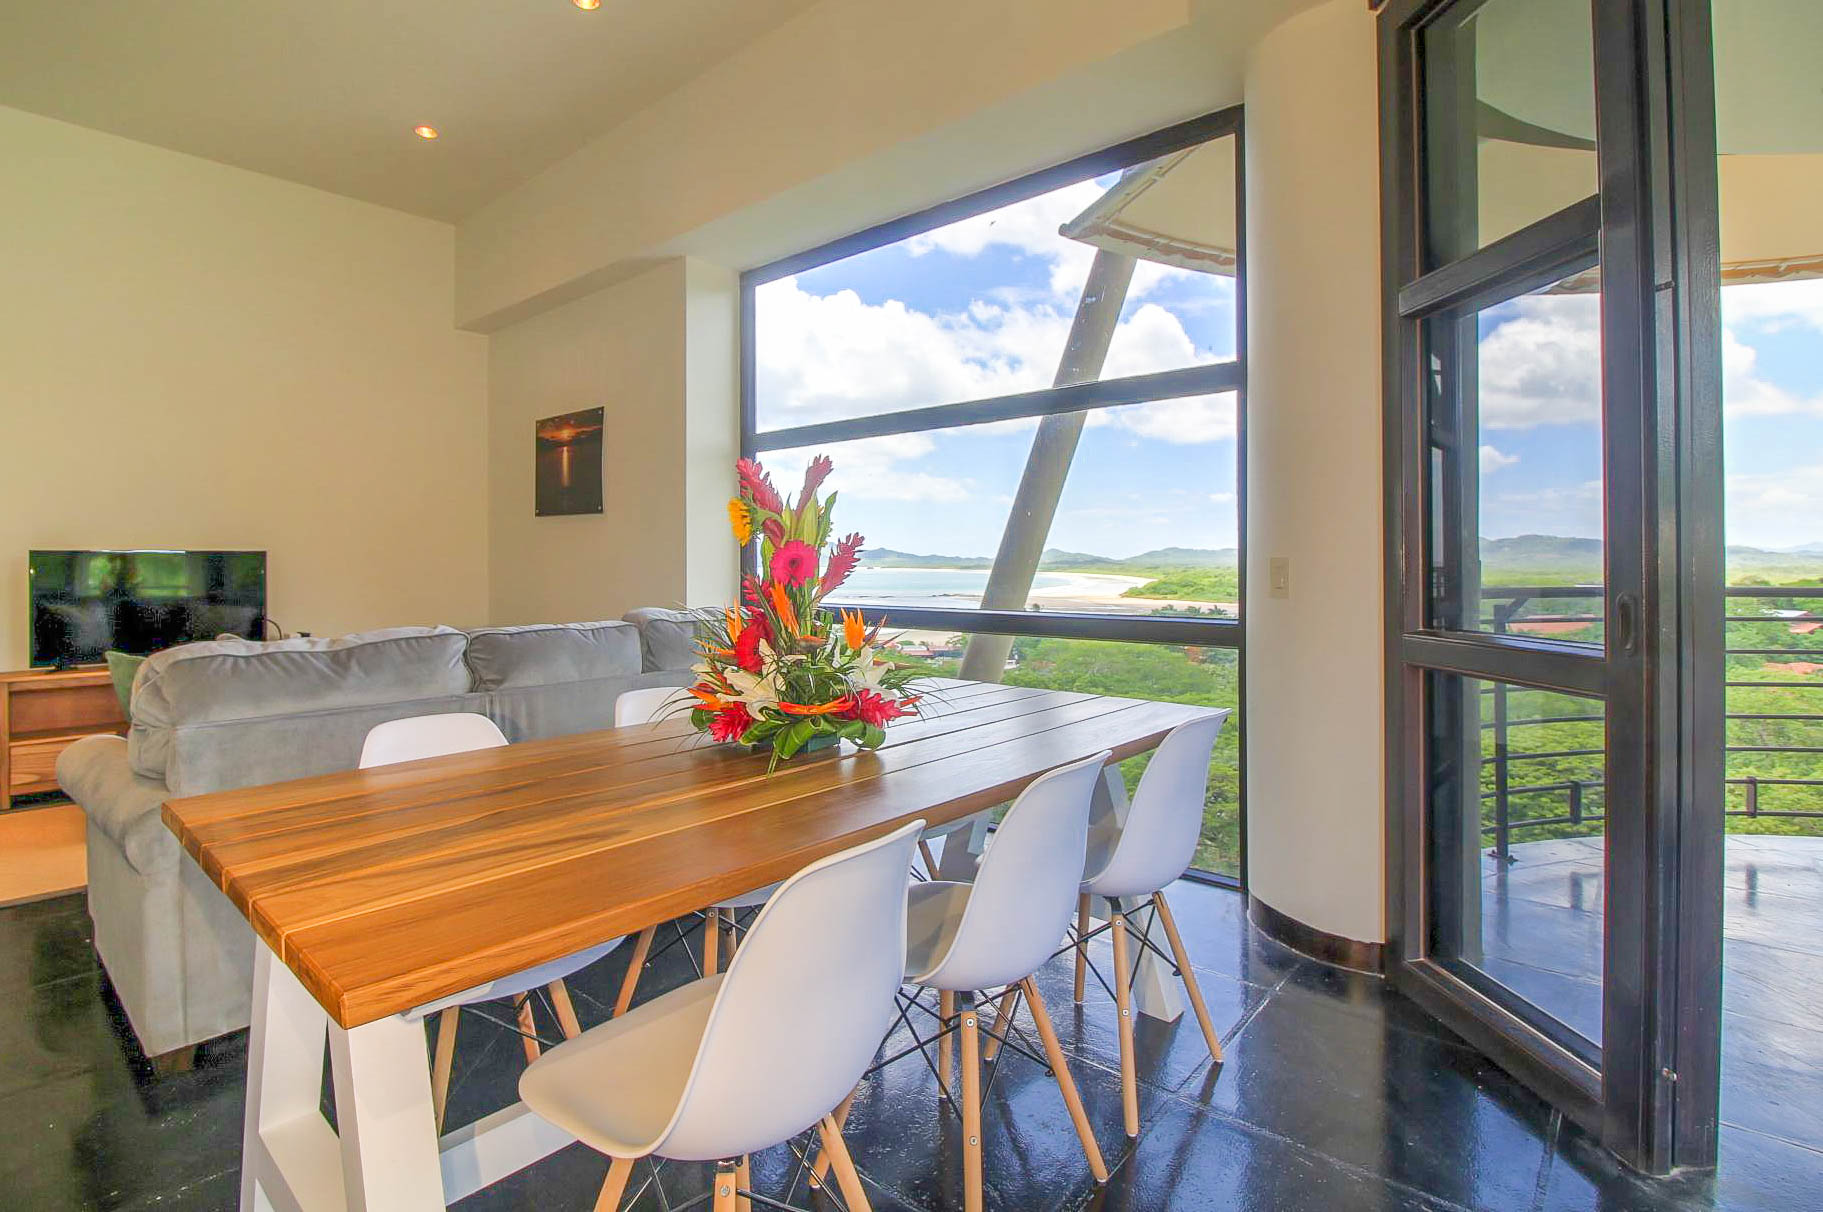 Dining Table with a view of Tamarindo Bay